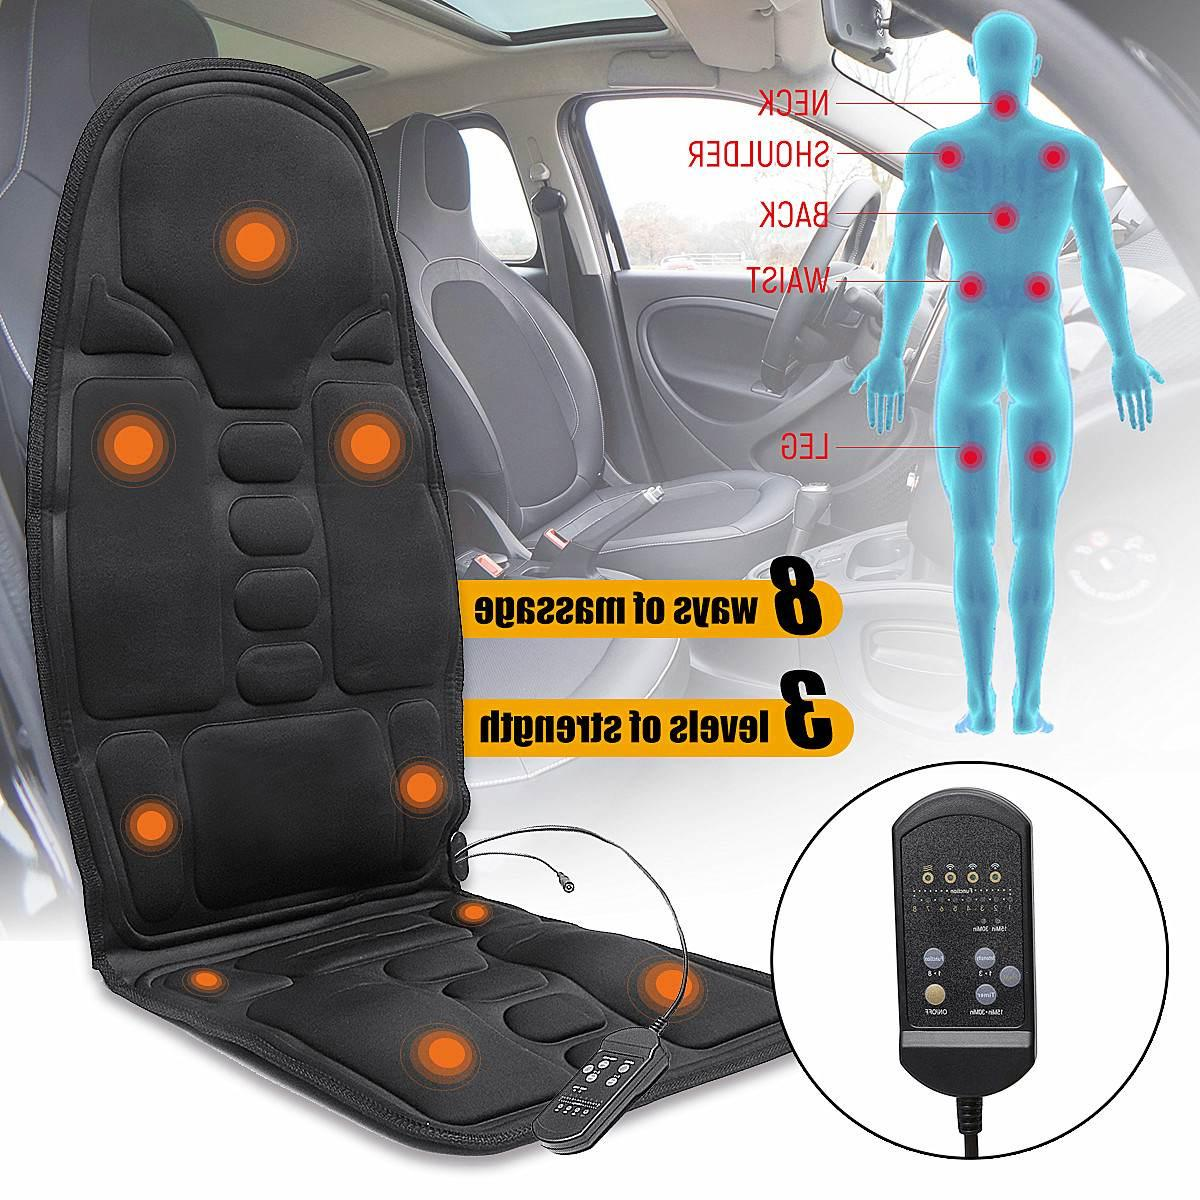 Electric Mulifunction Heated Massage <font><b>Car</b></font> Home Office Cushion <font><b>Car</b></font> <font><b>Chair</b></font> Lumbar Back Neck